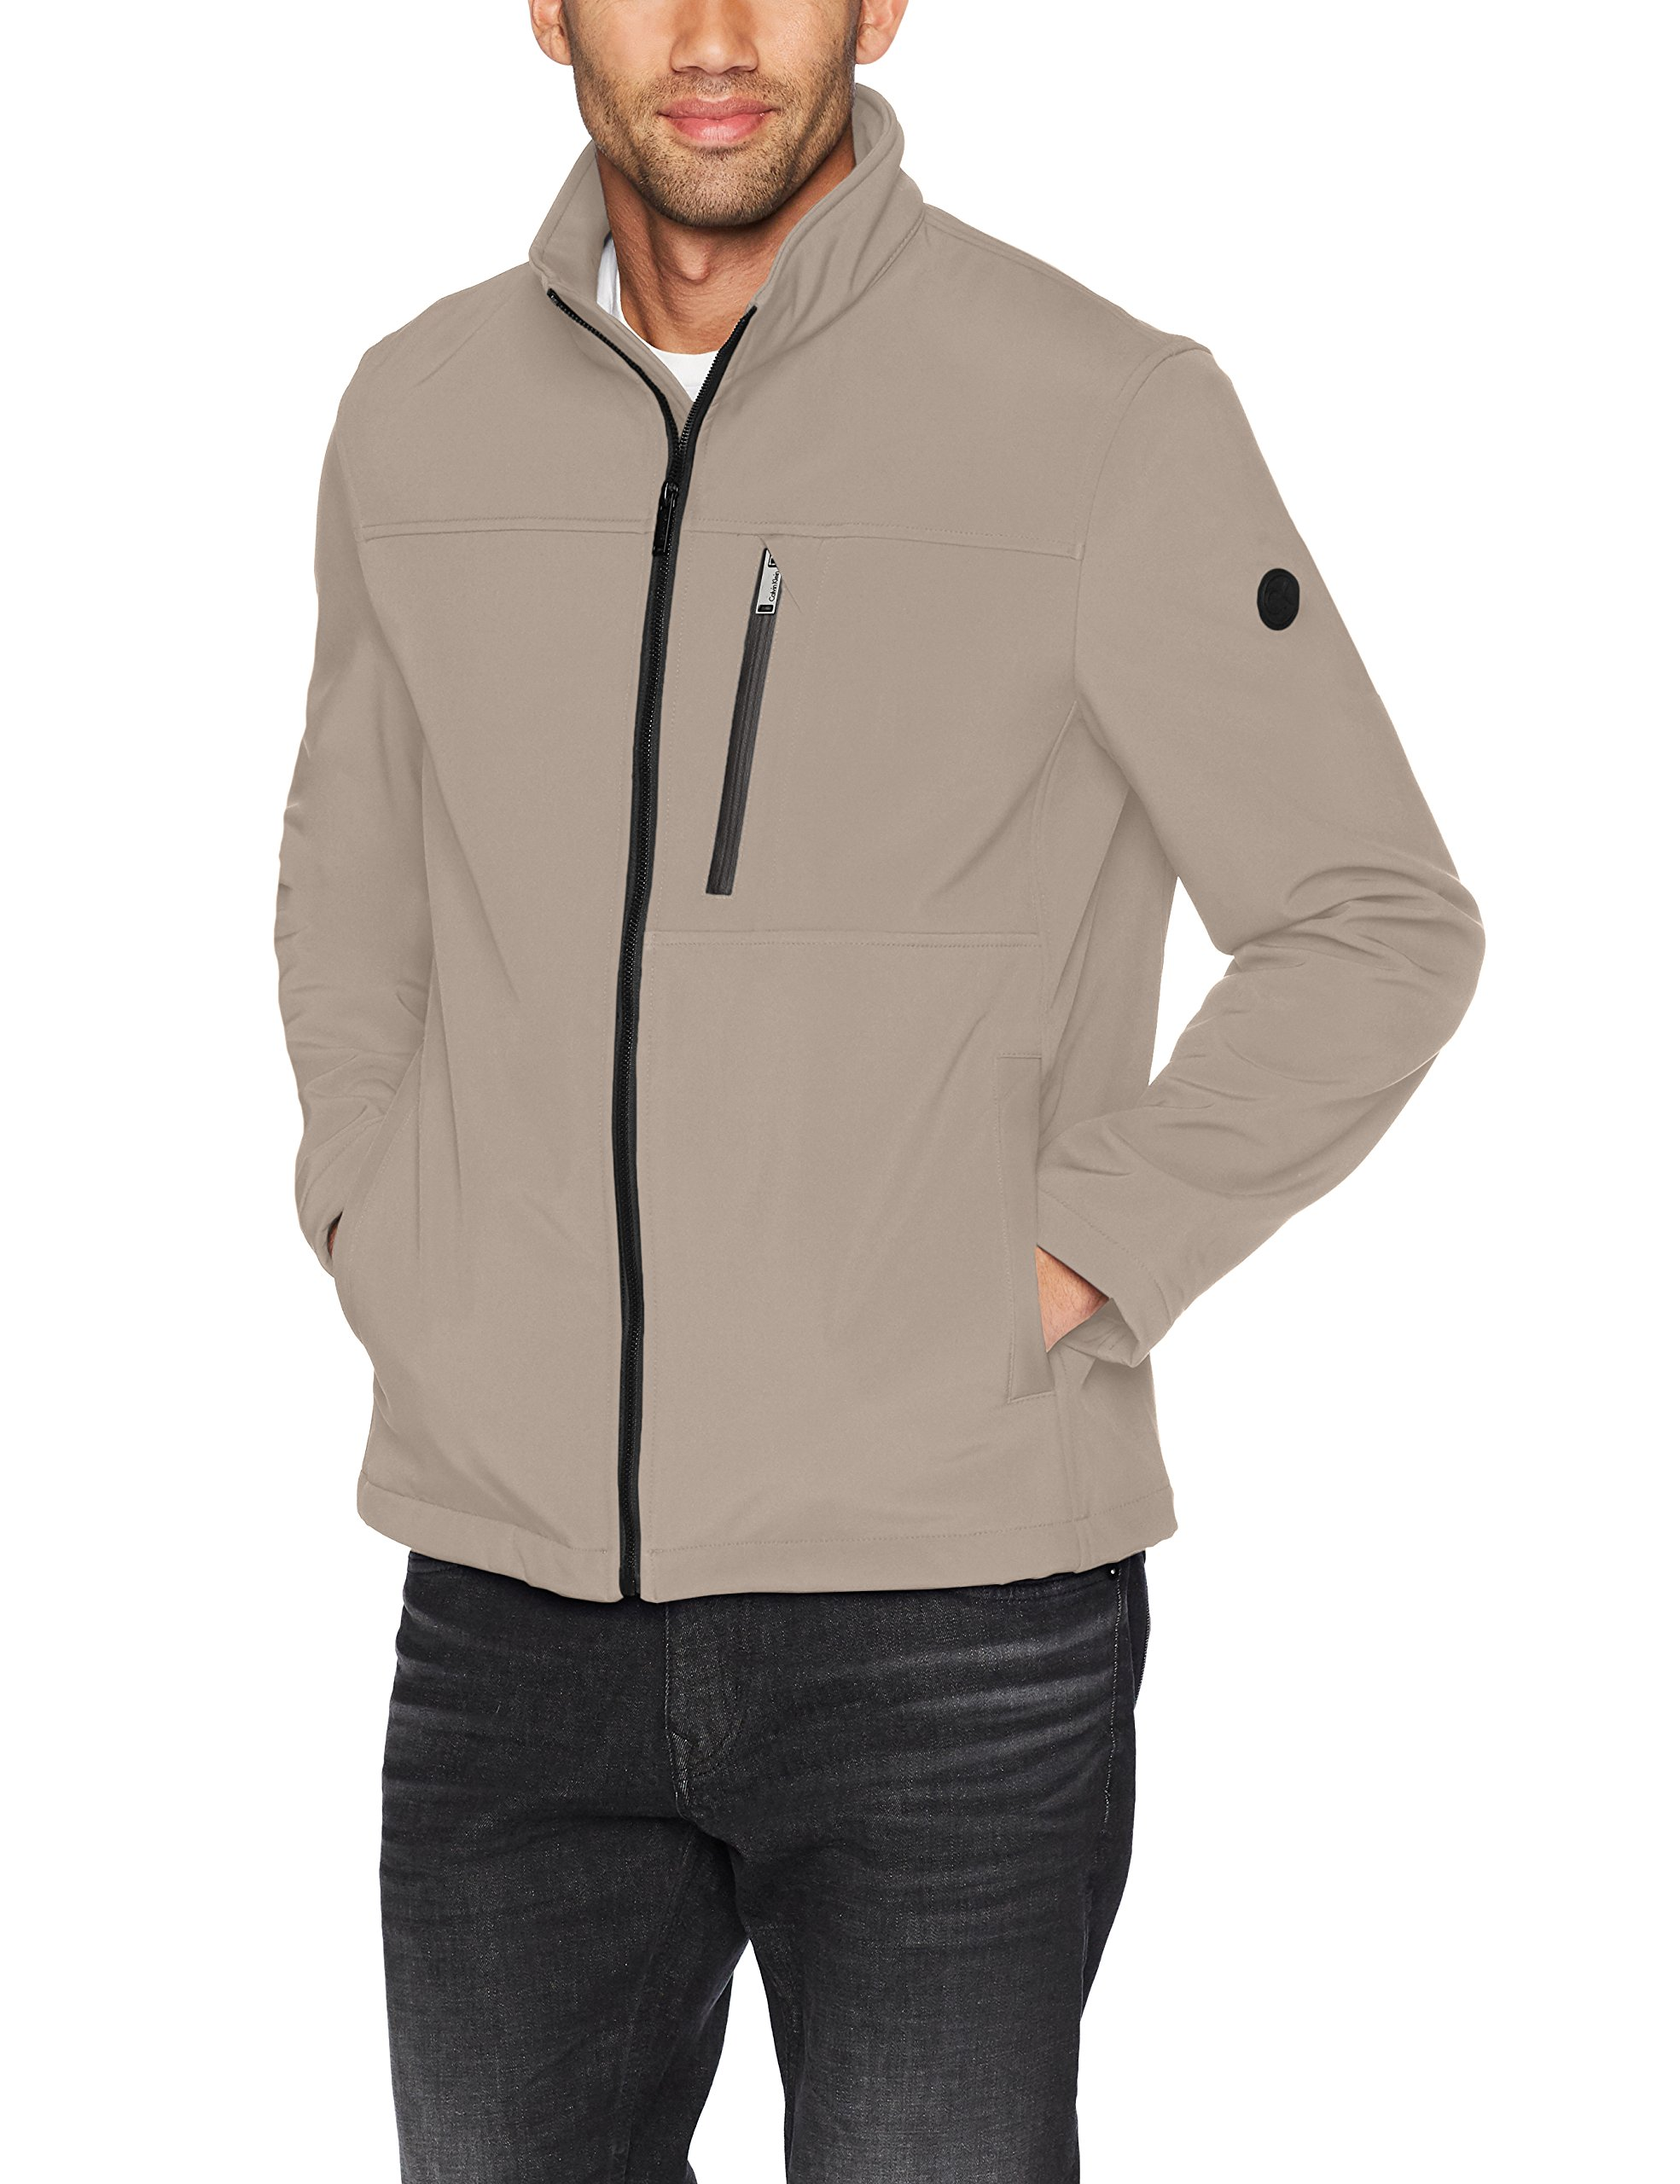 Calvin Klein Men's Soft Shell Jacket with Detail, Desert, Large by Calvin Klein